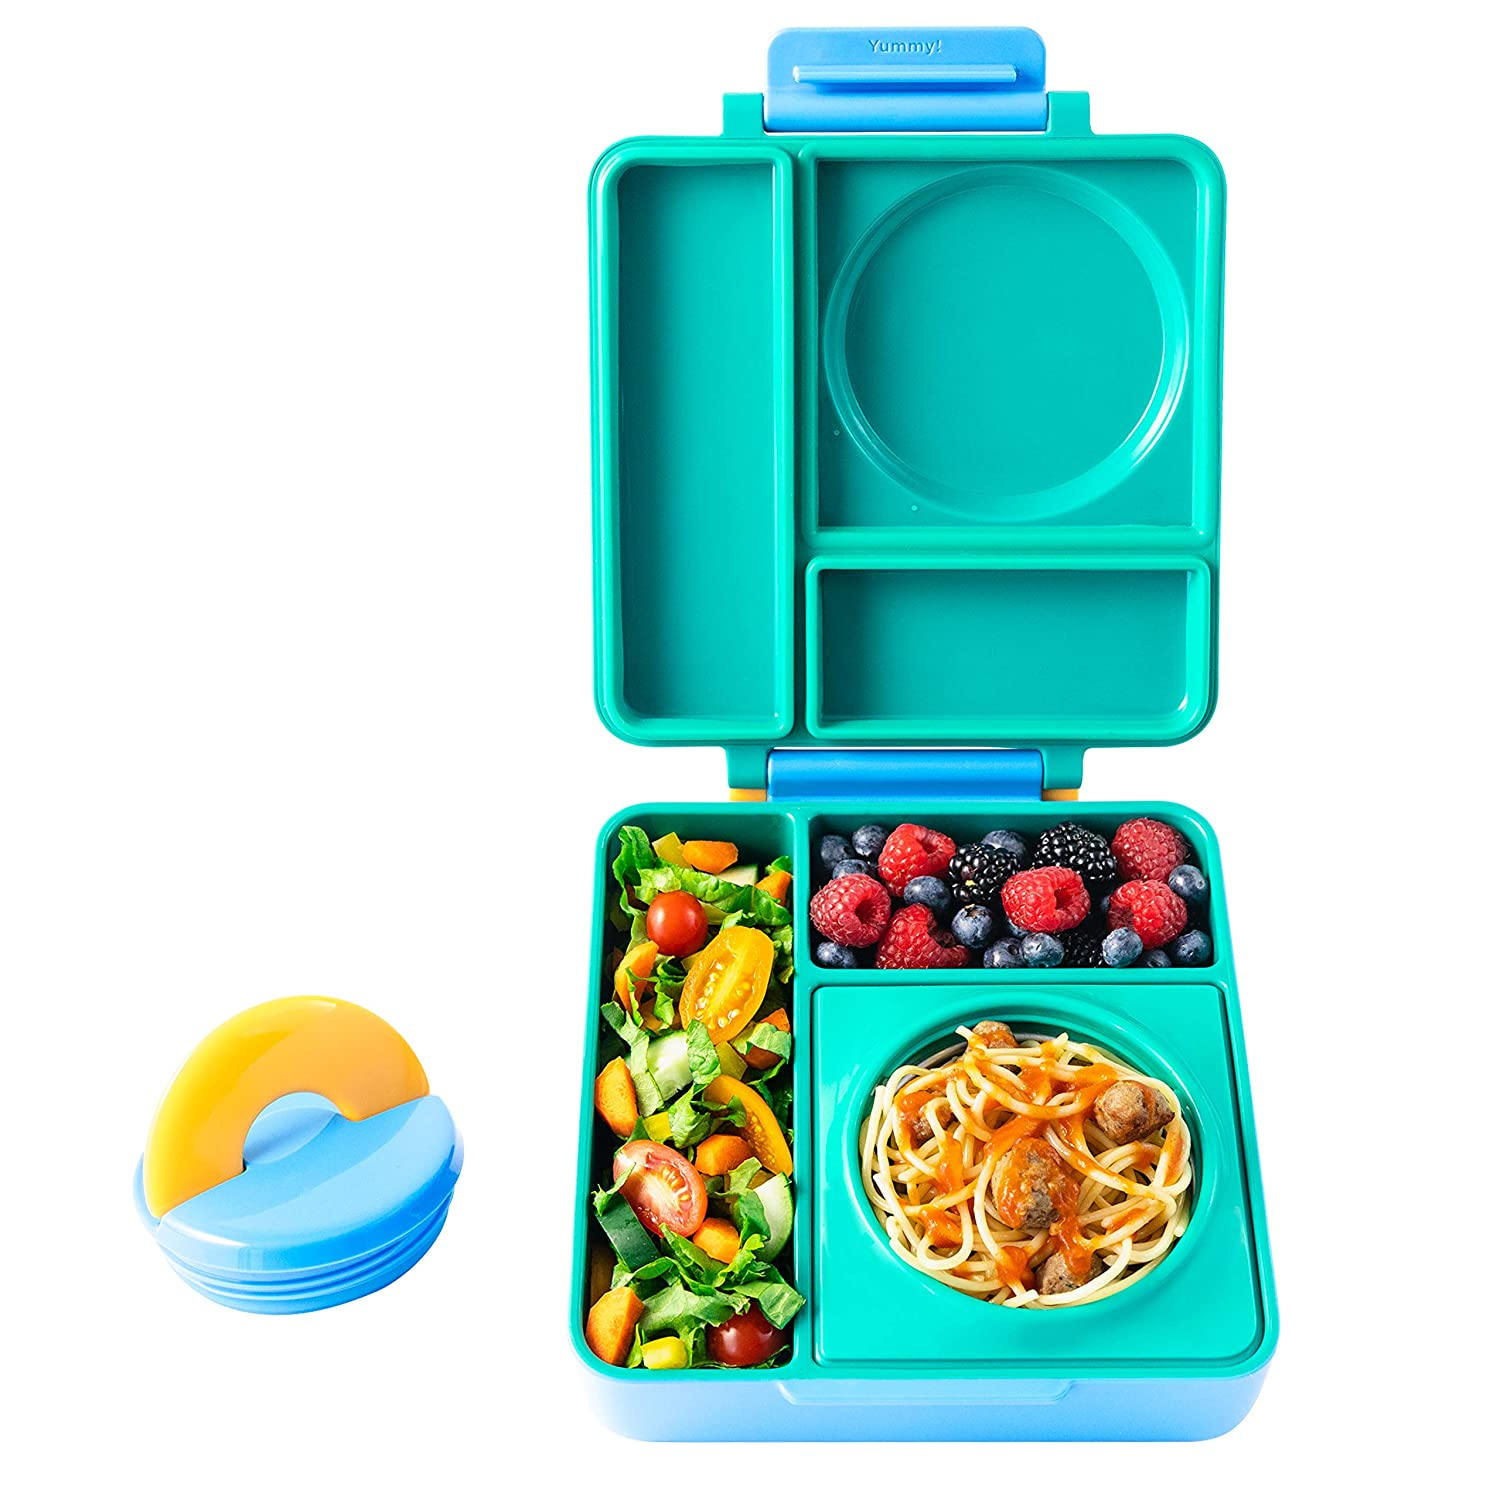 OmieBox - Leak-Proof 3-Compartment Bento Lunch Box For Kids - Includes Insulated Food Thermos - Two Temperature Zones For Hot & Cold Food (Meadow)